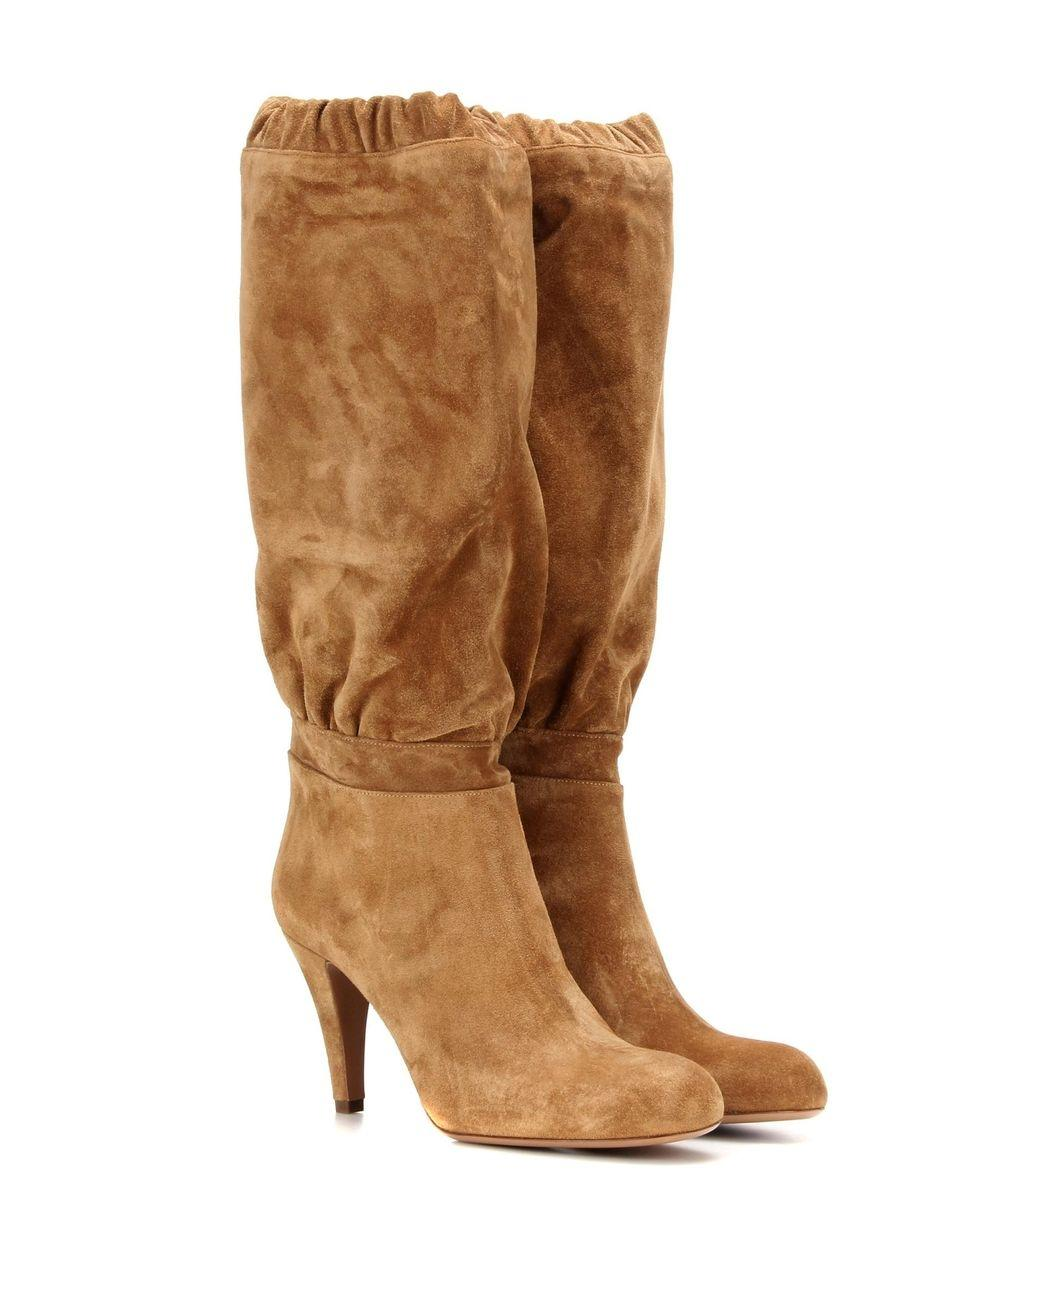 1a54ab51dd5 Chloé Beige Lena Suede Boots Booties Size US 6 6 6 Regular (M